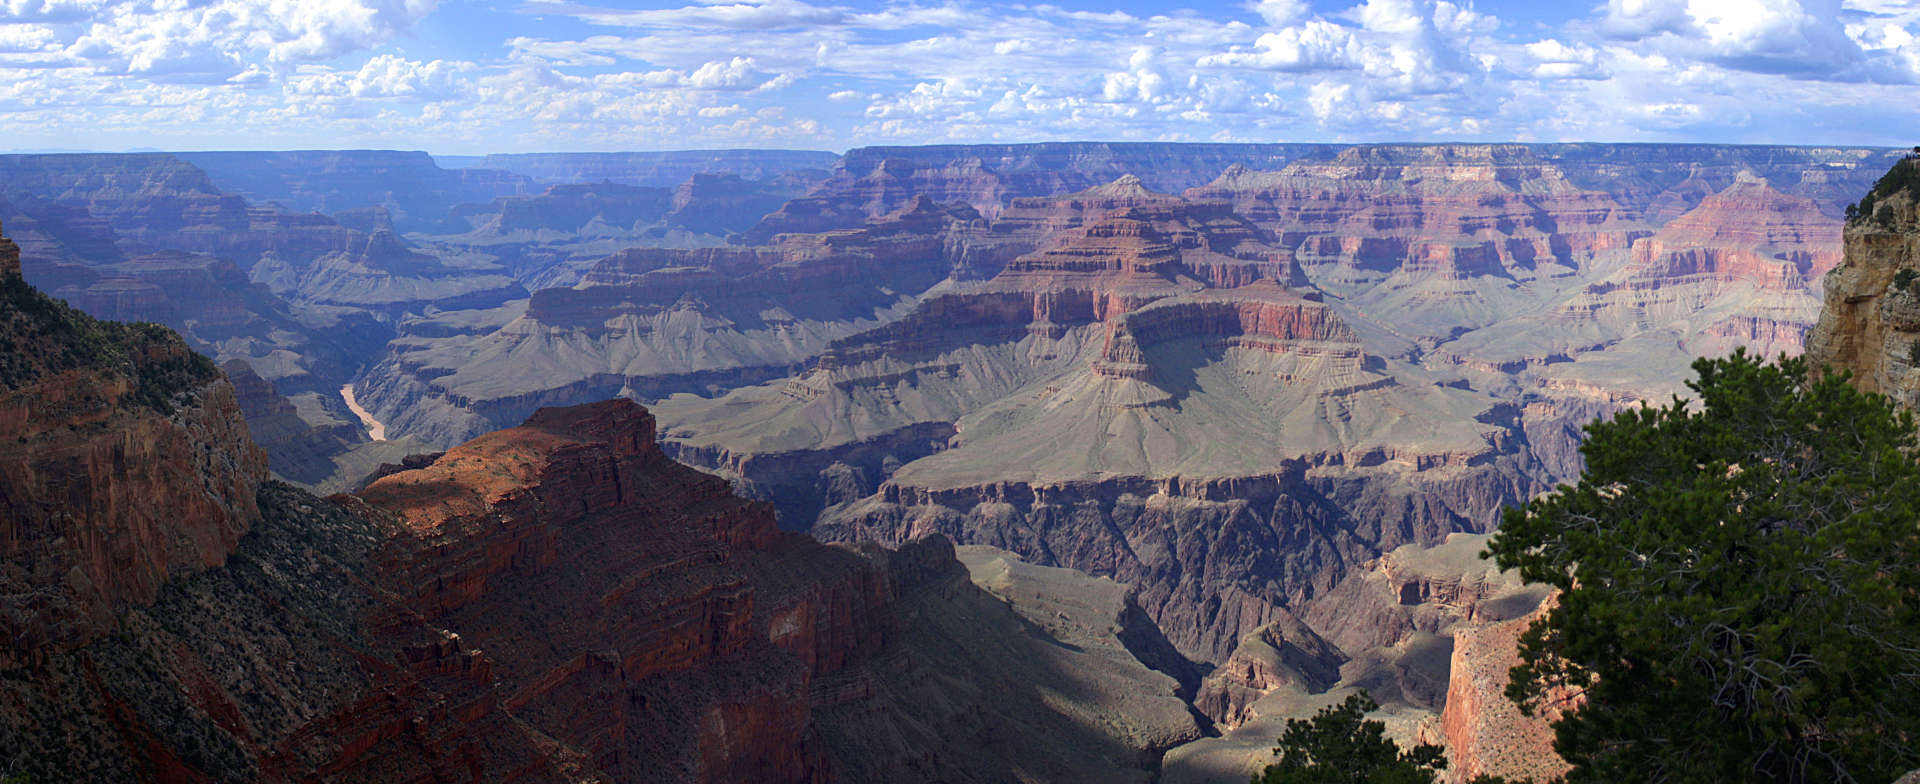 USA Hochplateau Los Angeles San Francisco LA Monument Valley die reise reisen bielefeld reisebuero Wellnessreisen Familienreisen Kreuzfahrten Lastminute Mietwagen Lastminute